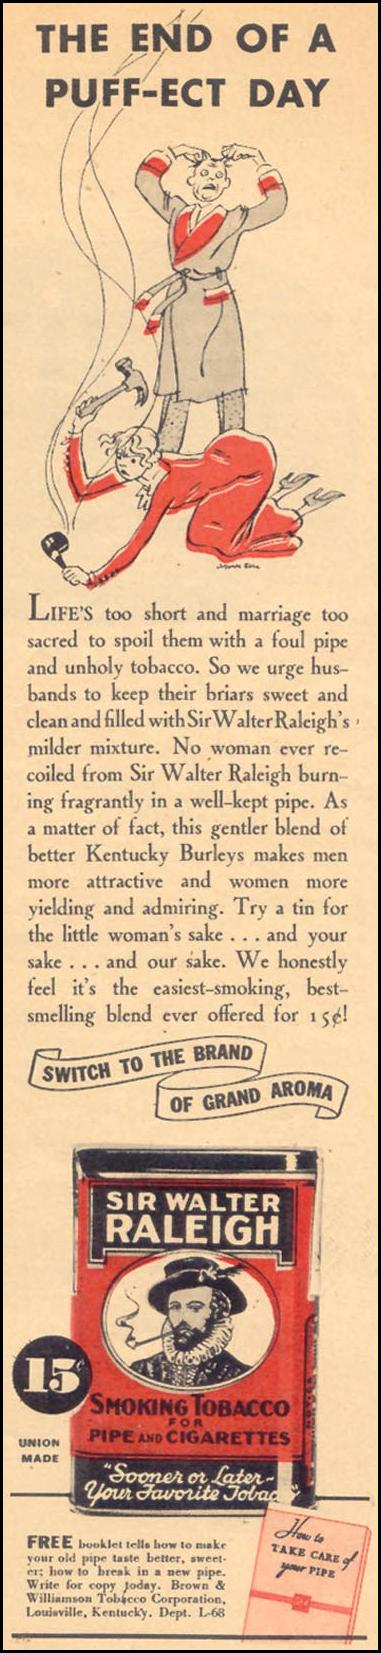 SIR WALTER RALEIGH PIPE TOBACCO LIBERTY 08/29/1936 p. 43